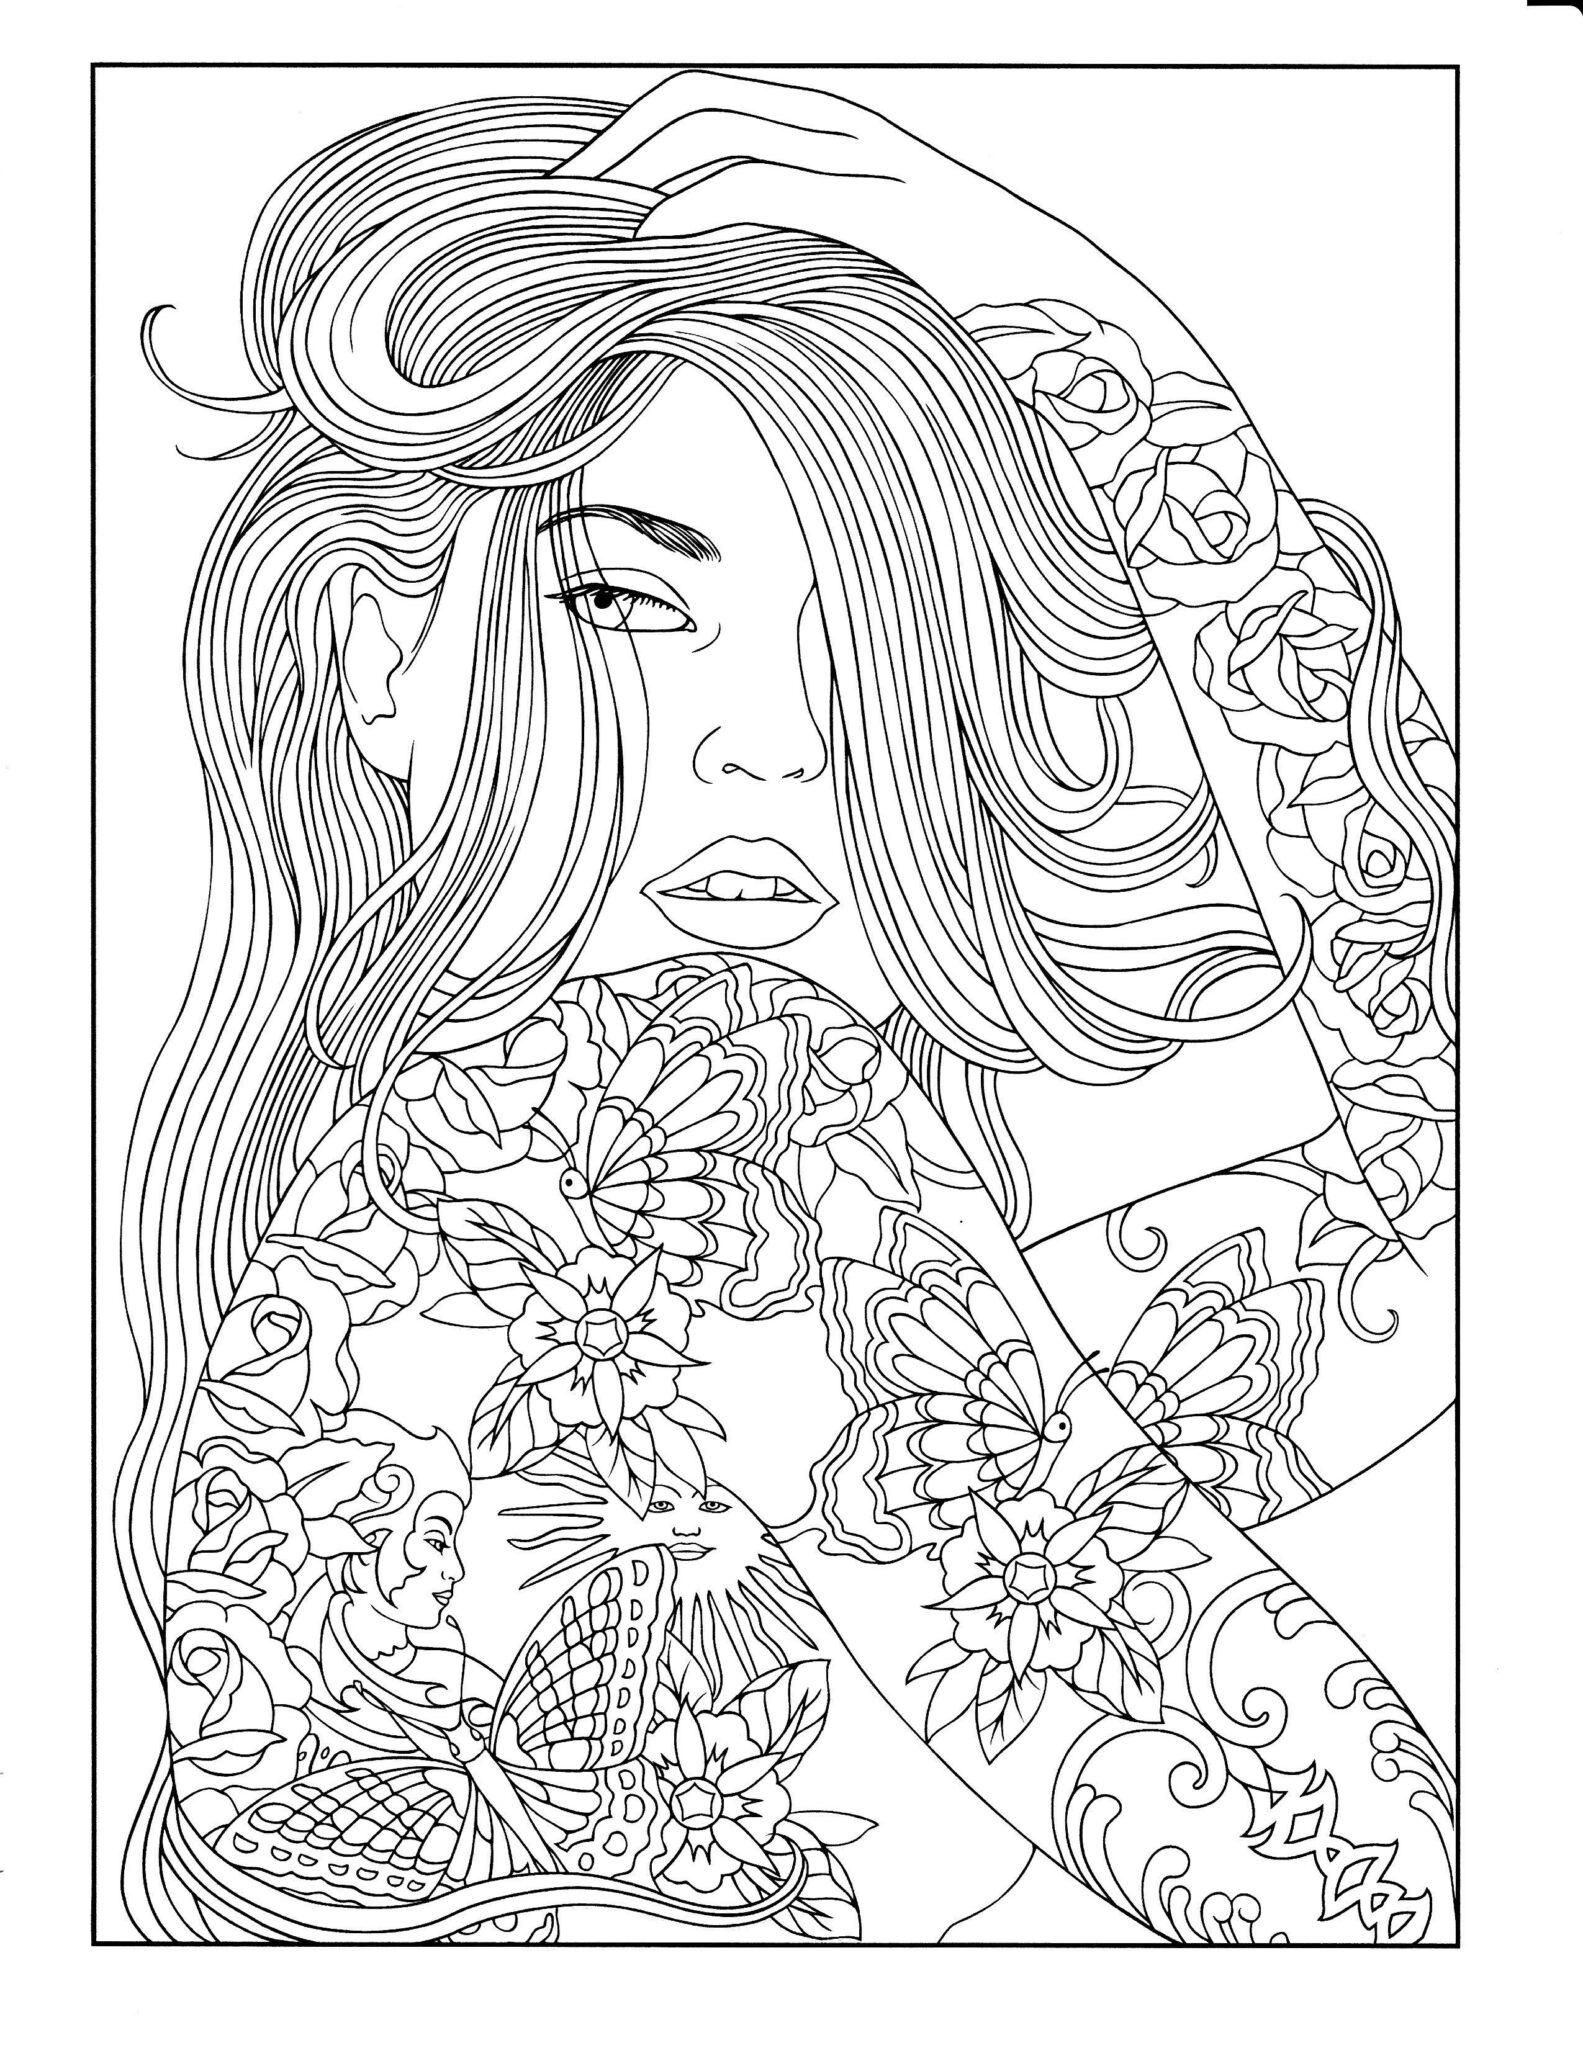 Adult Coloring Pages for Men 1